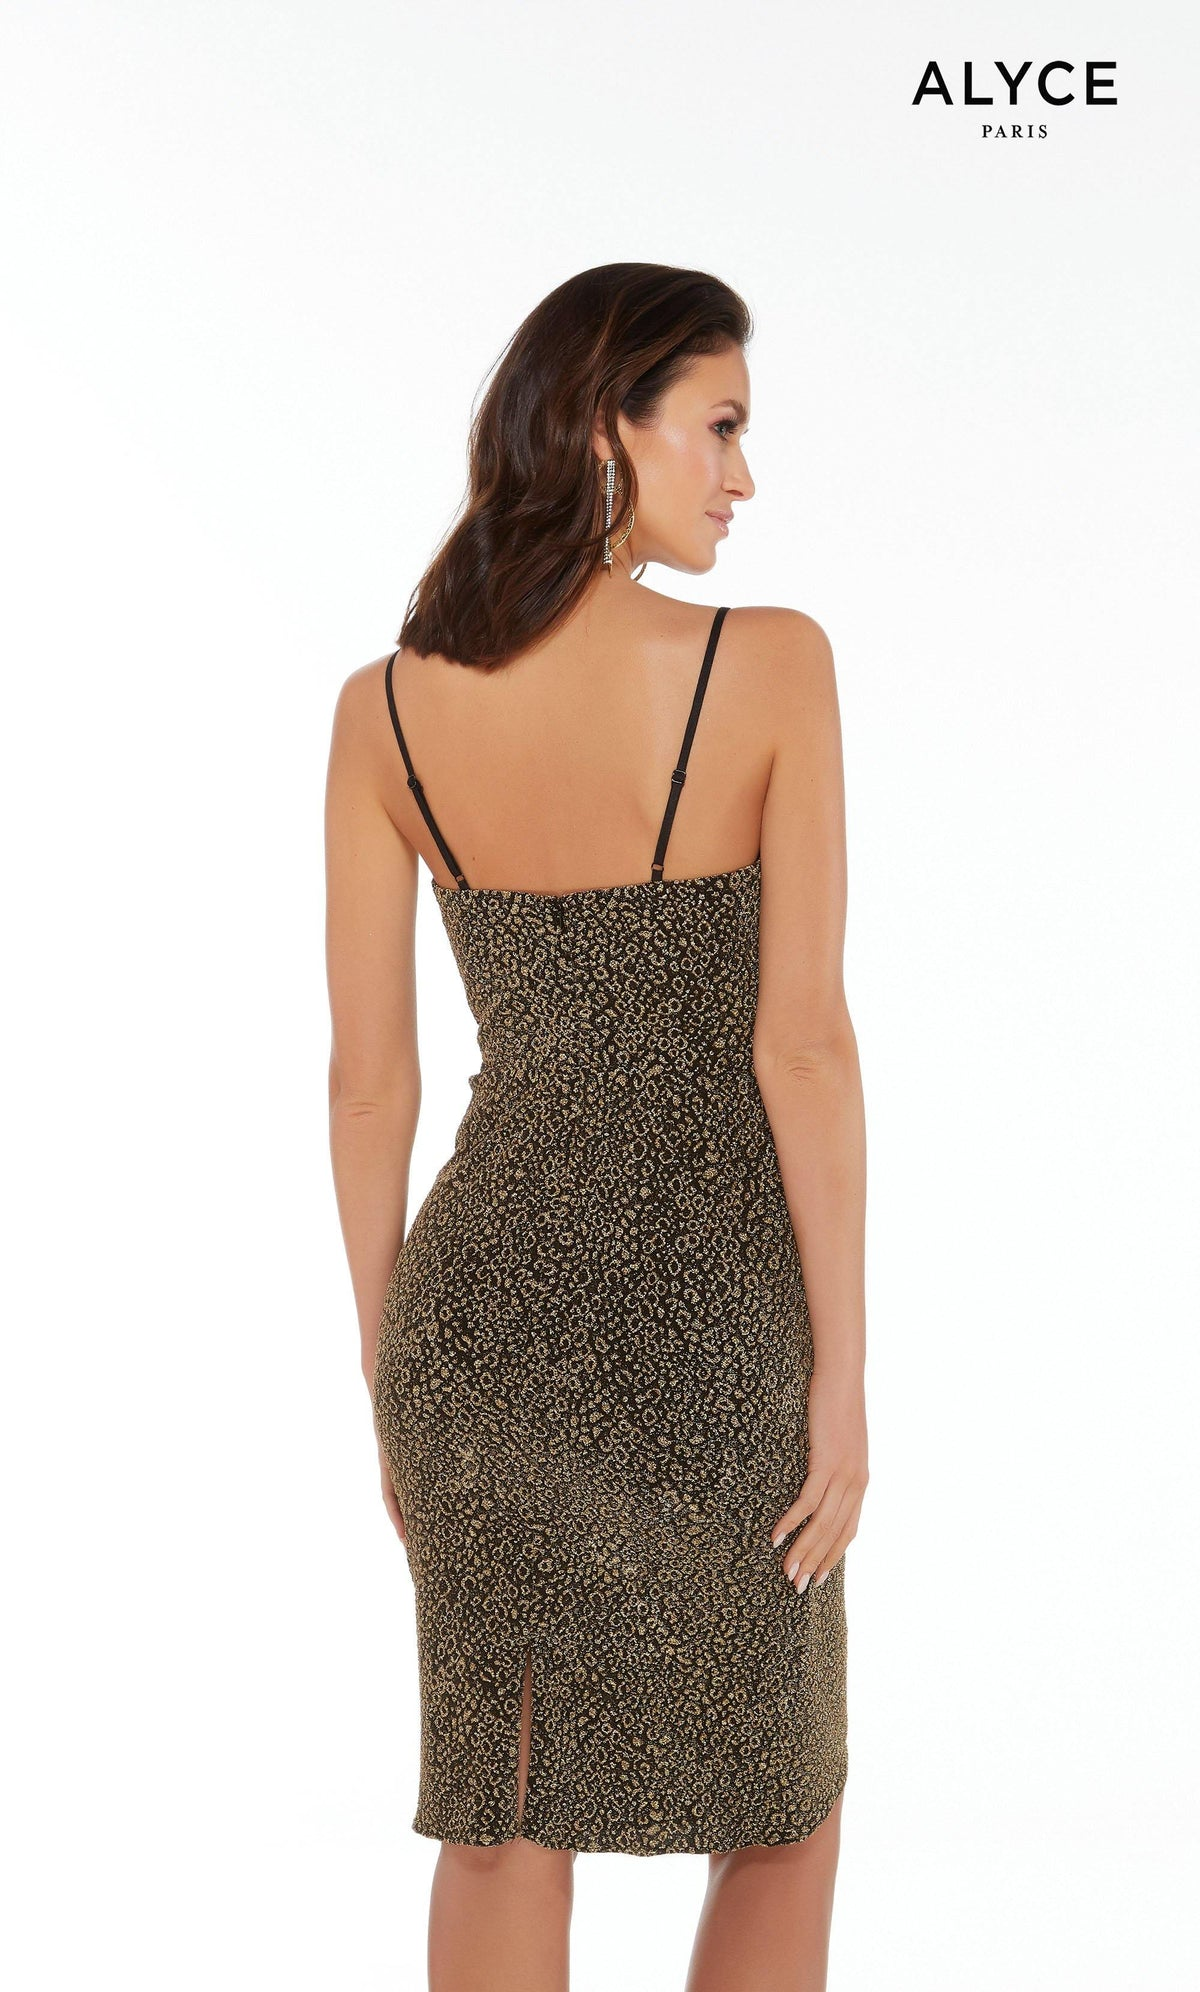 Black and Gold cheetah print cocktail dress with an enclosed back and a slit